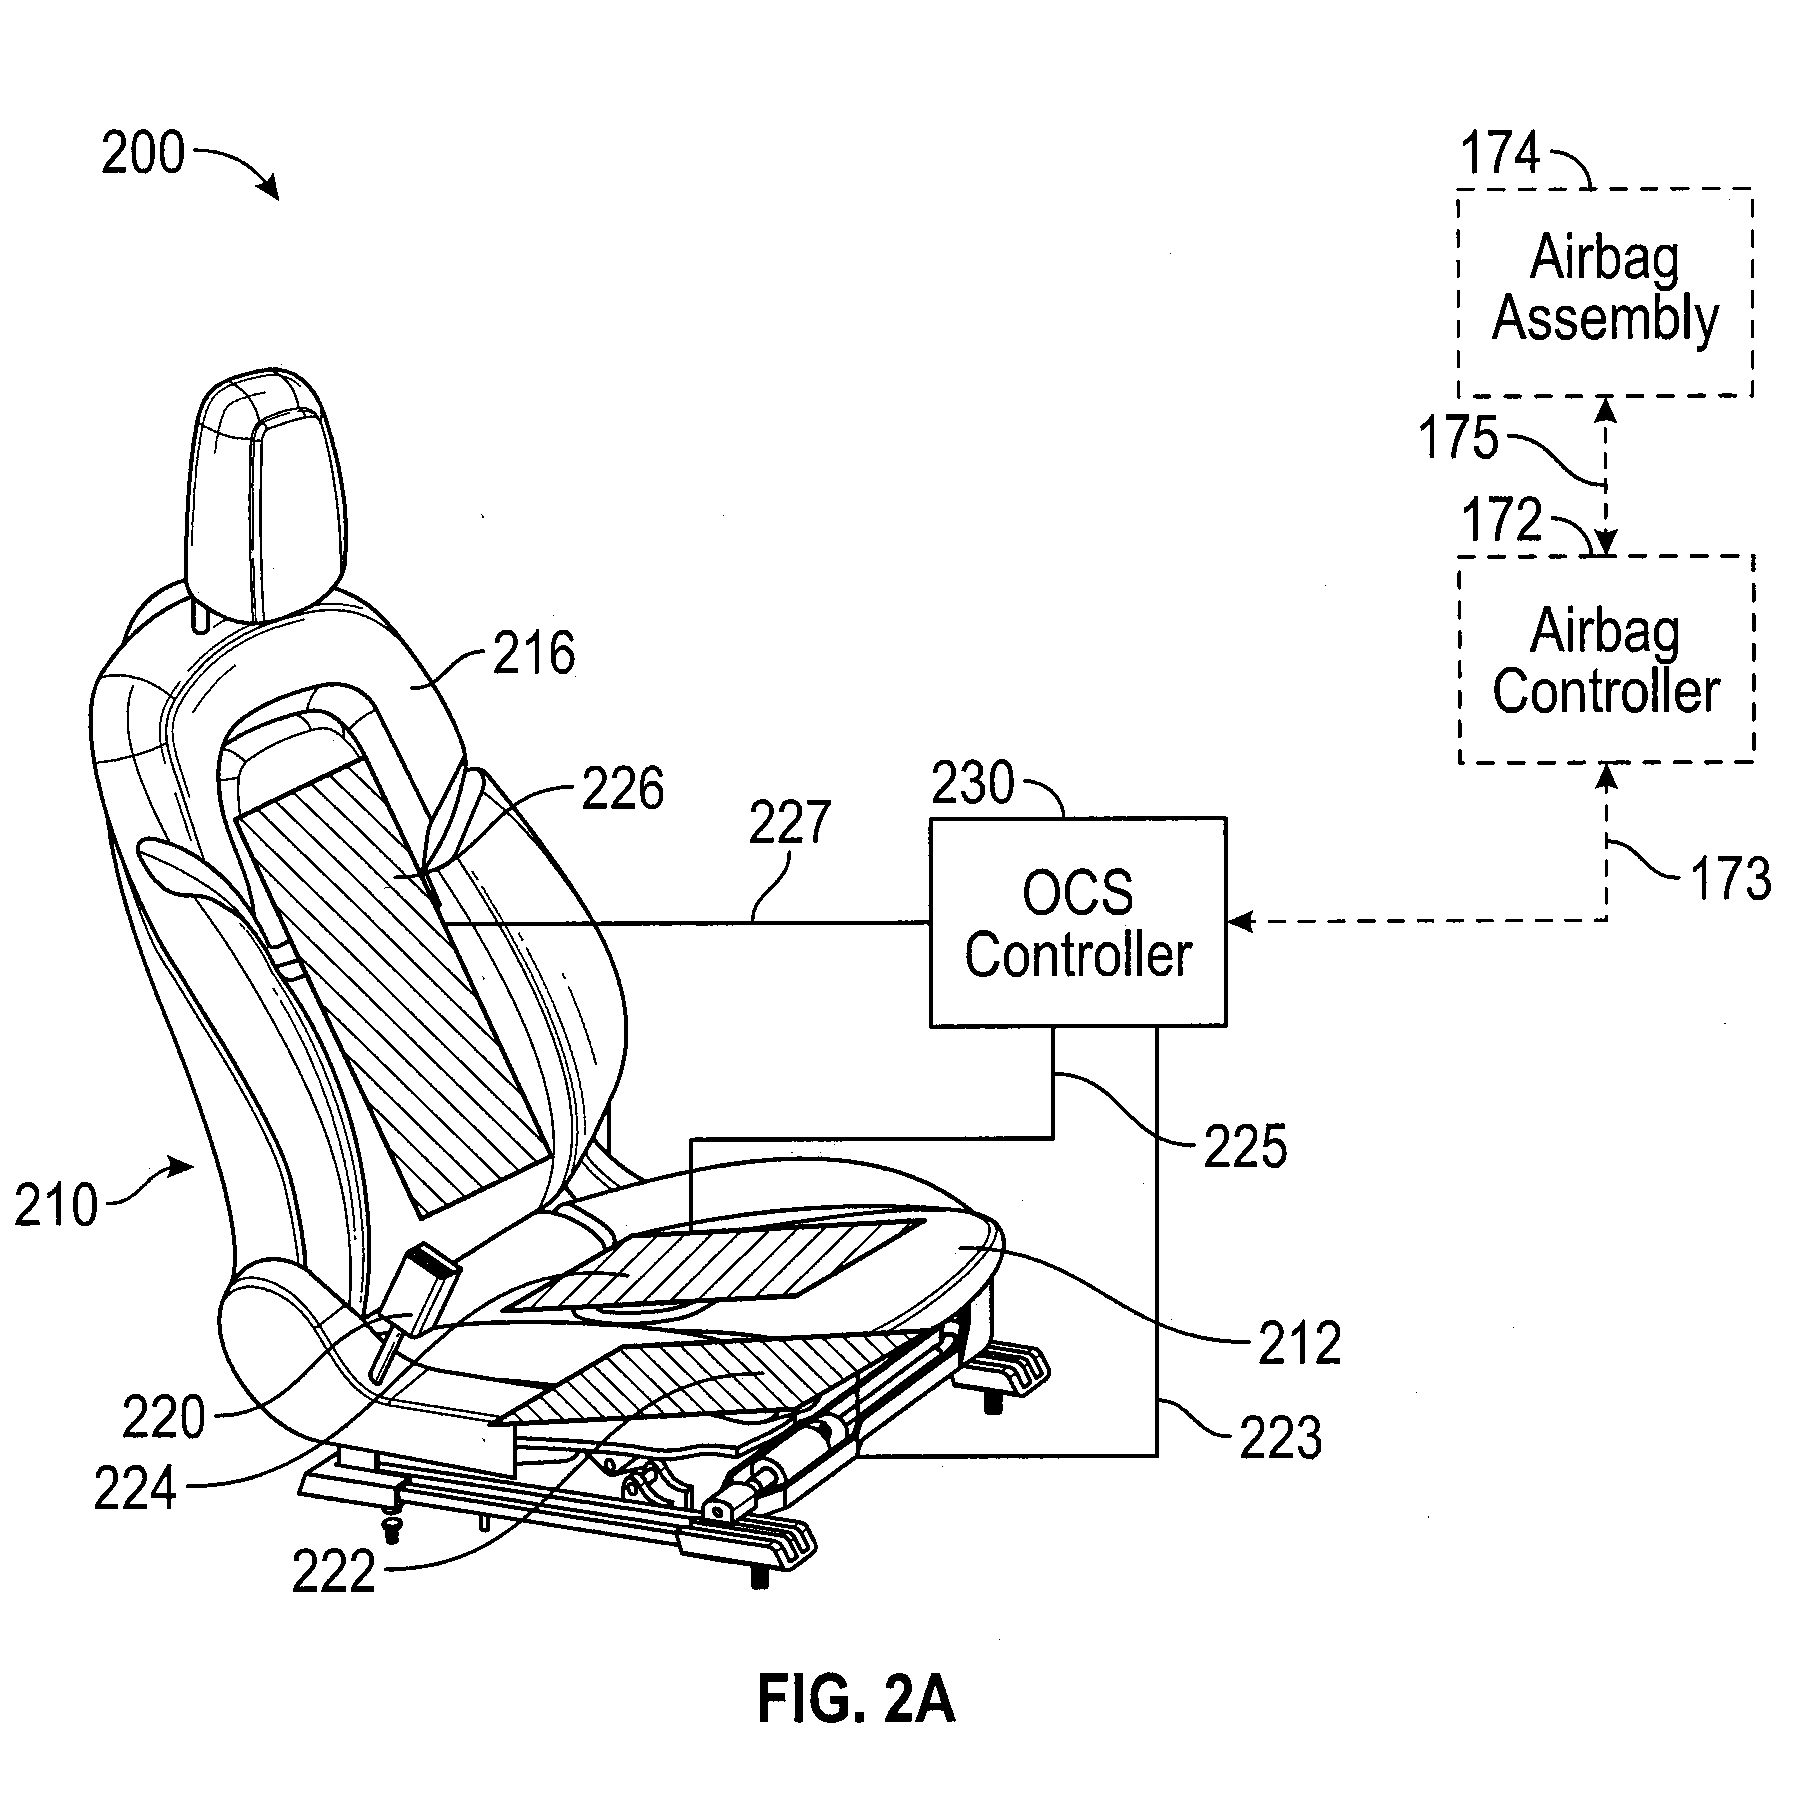 Tesla Designs Safer Airbag Deployment System Through Seat